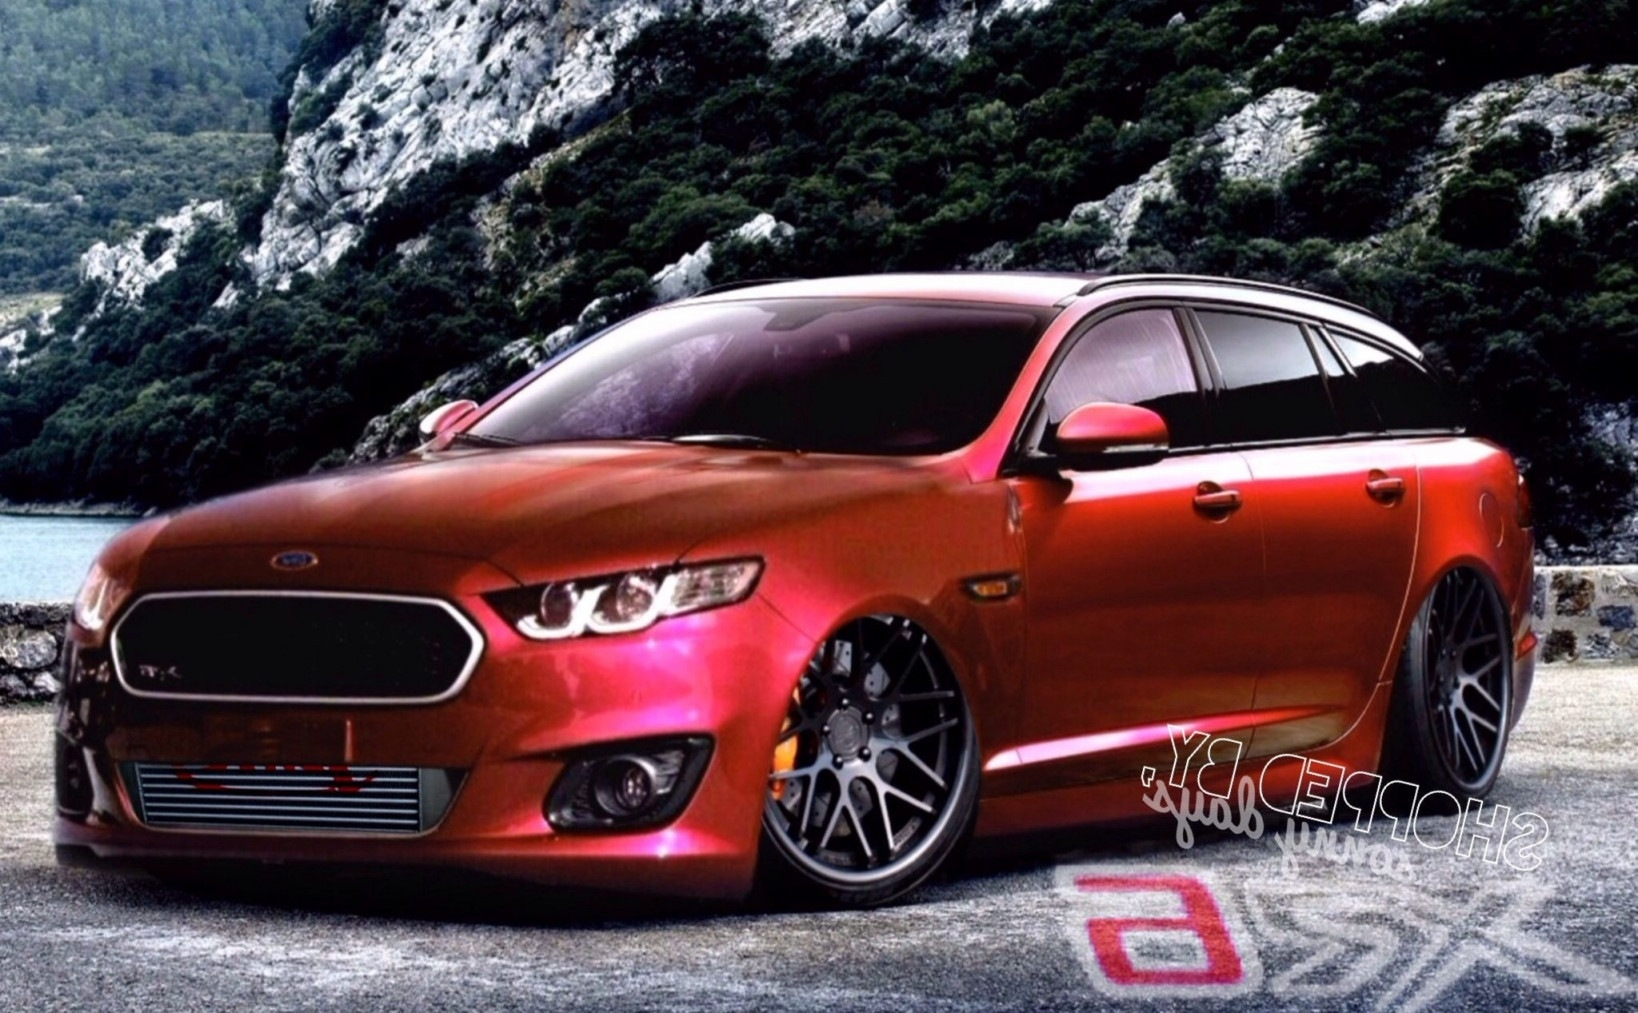 77 New 2020 Ford Falcon Xr8 Gt Exterior and Interior